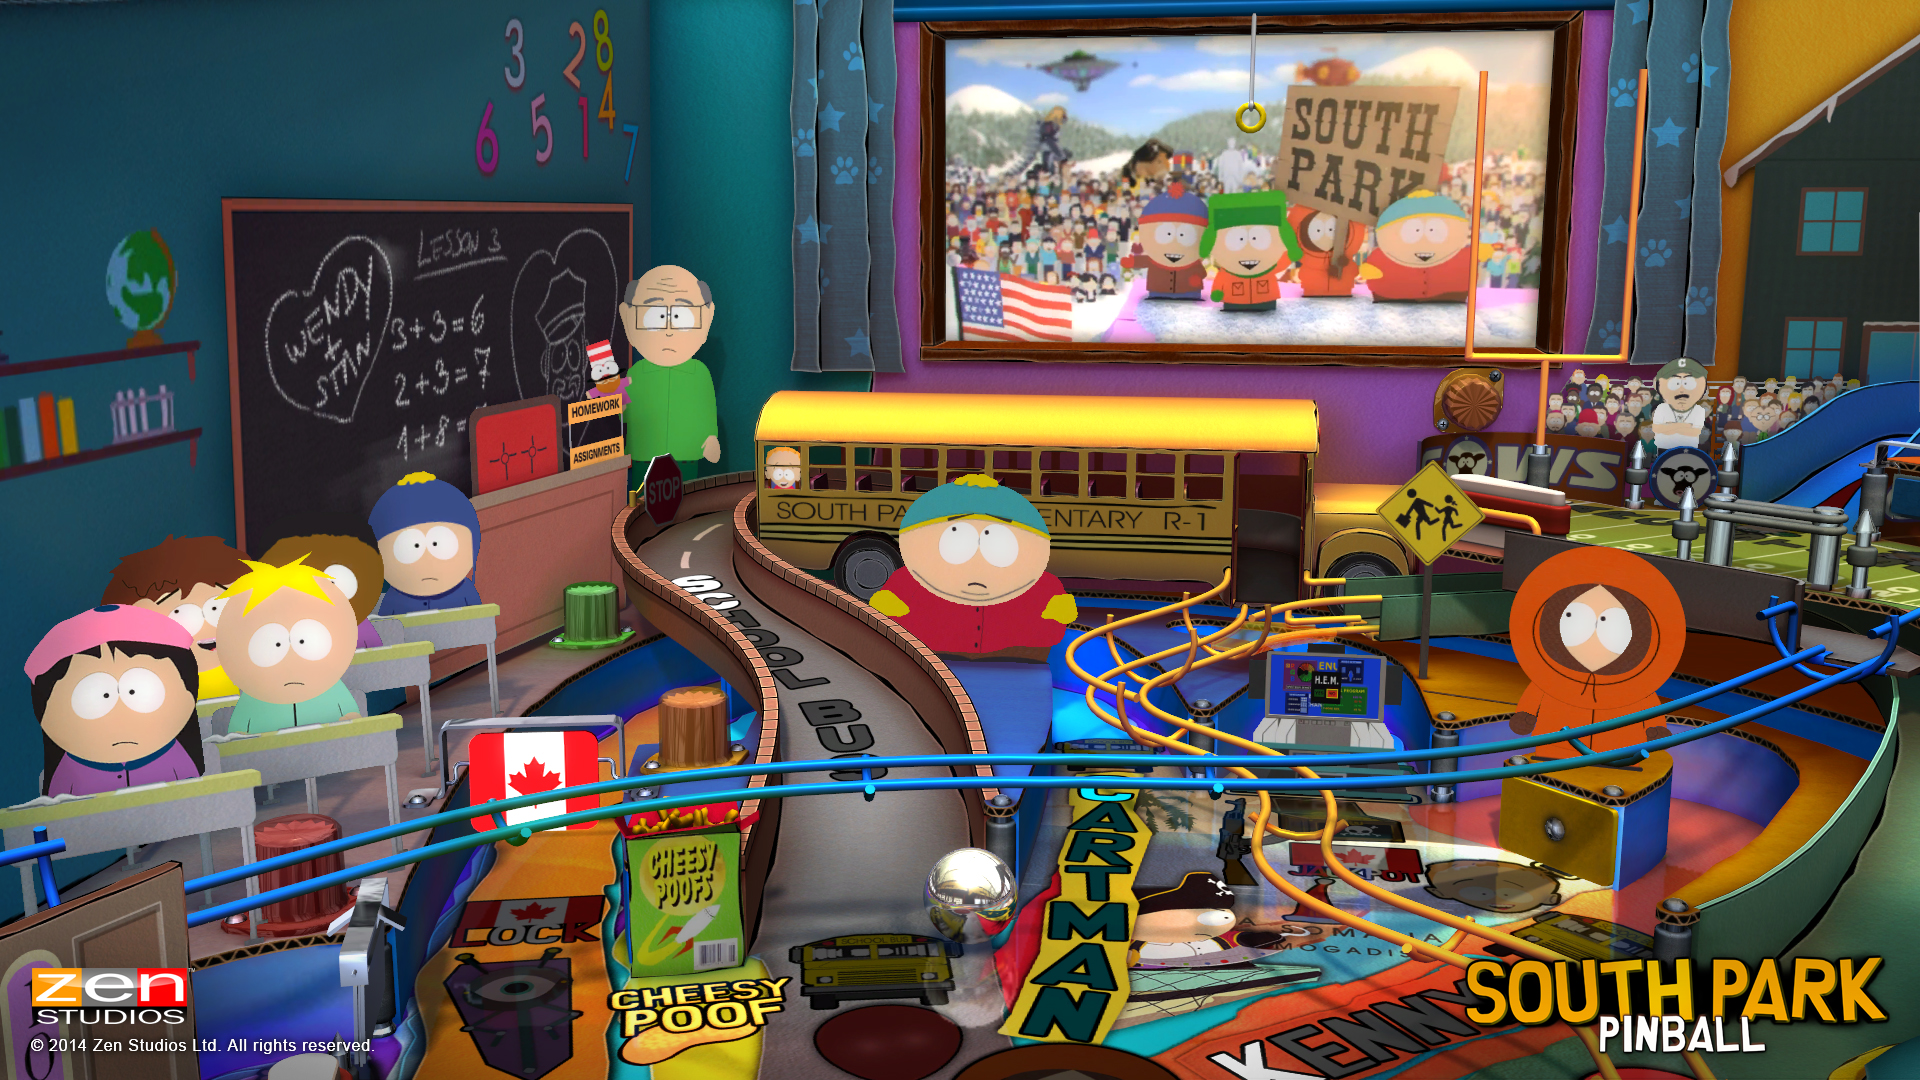 Zen Pinball 2 South Park Pinball PS Vita 08